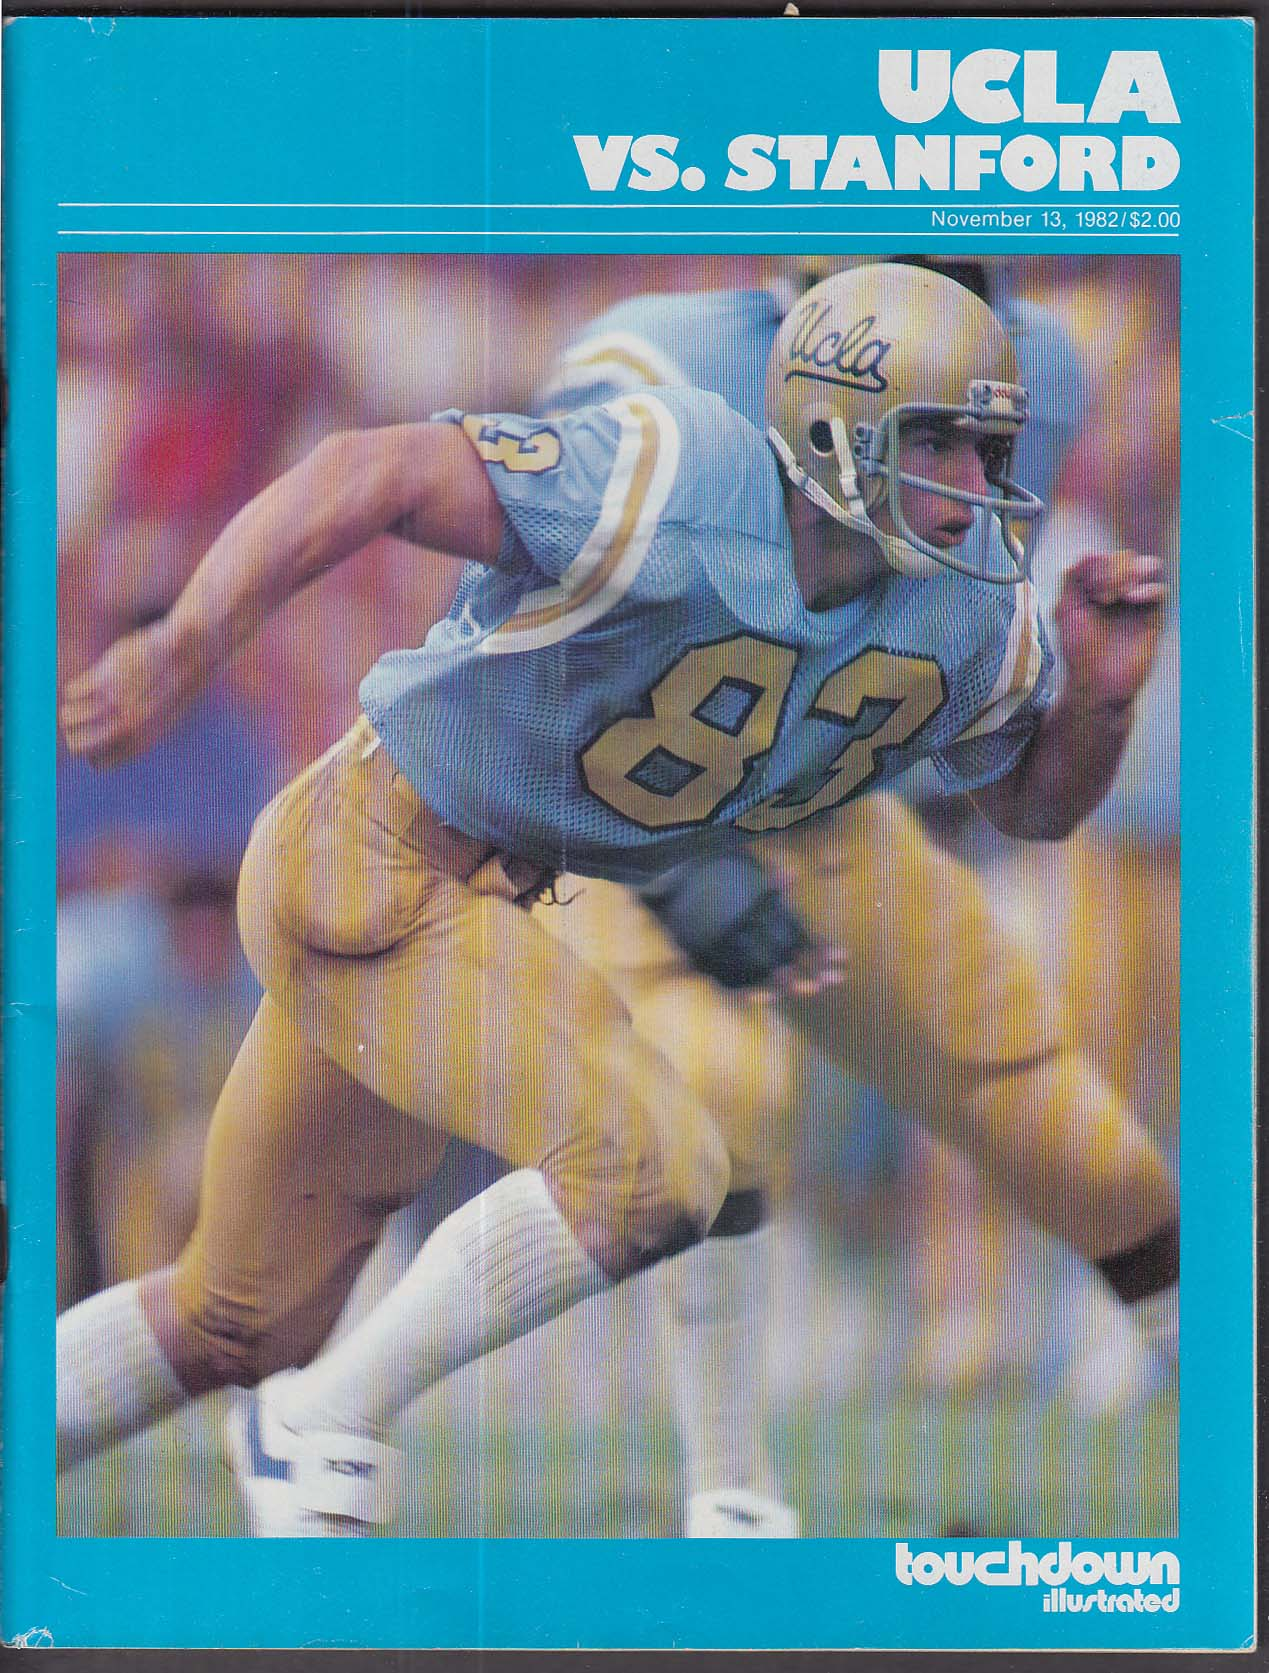 TOUCHDOWN ILLUSTRATED UCLA vs Stanford 11/13 1982